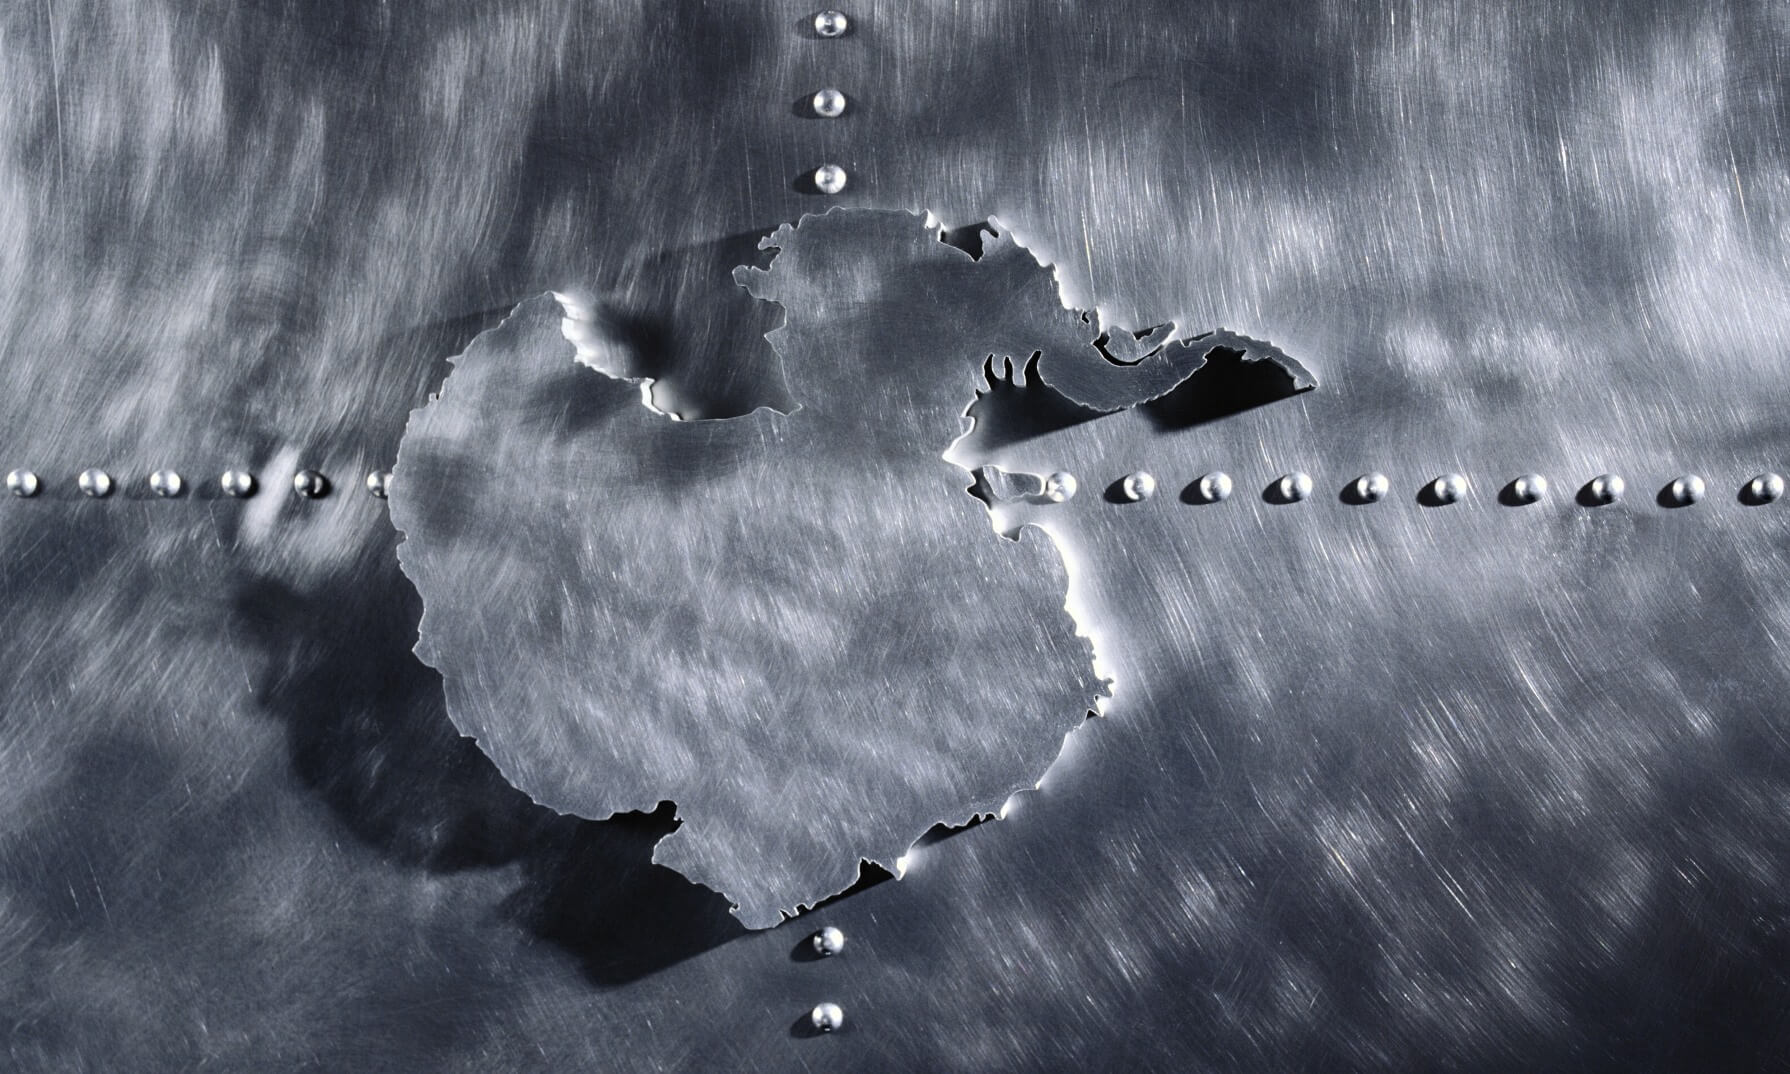 Brushed Metal Map of Antarctica